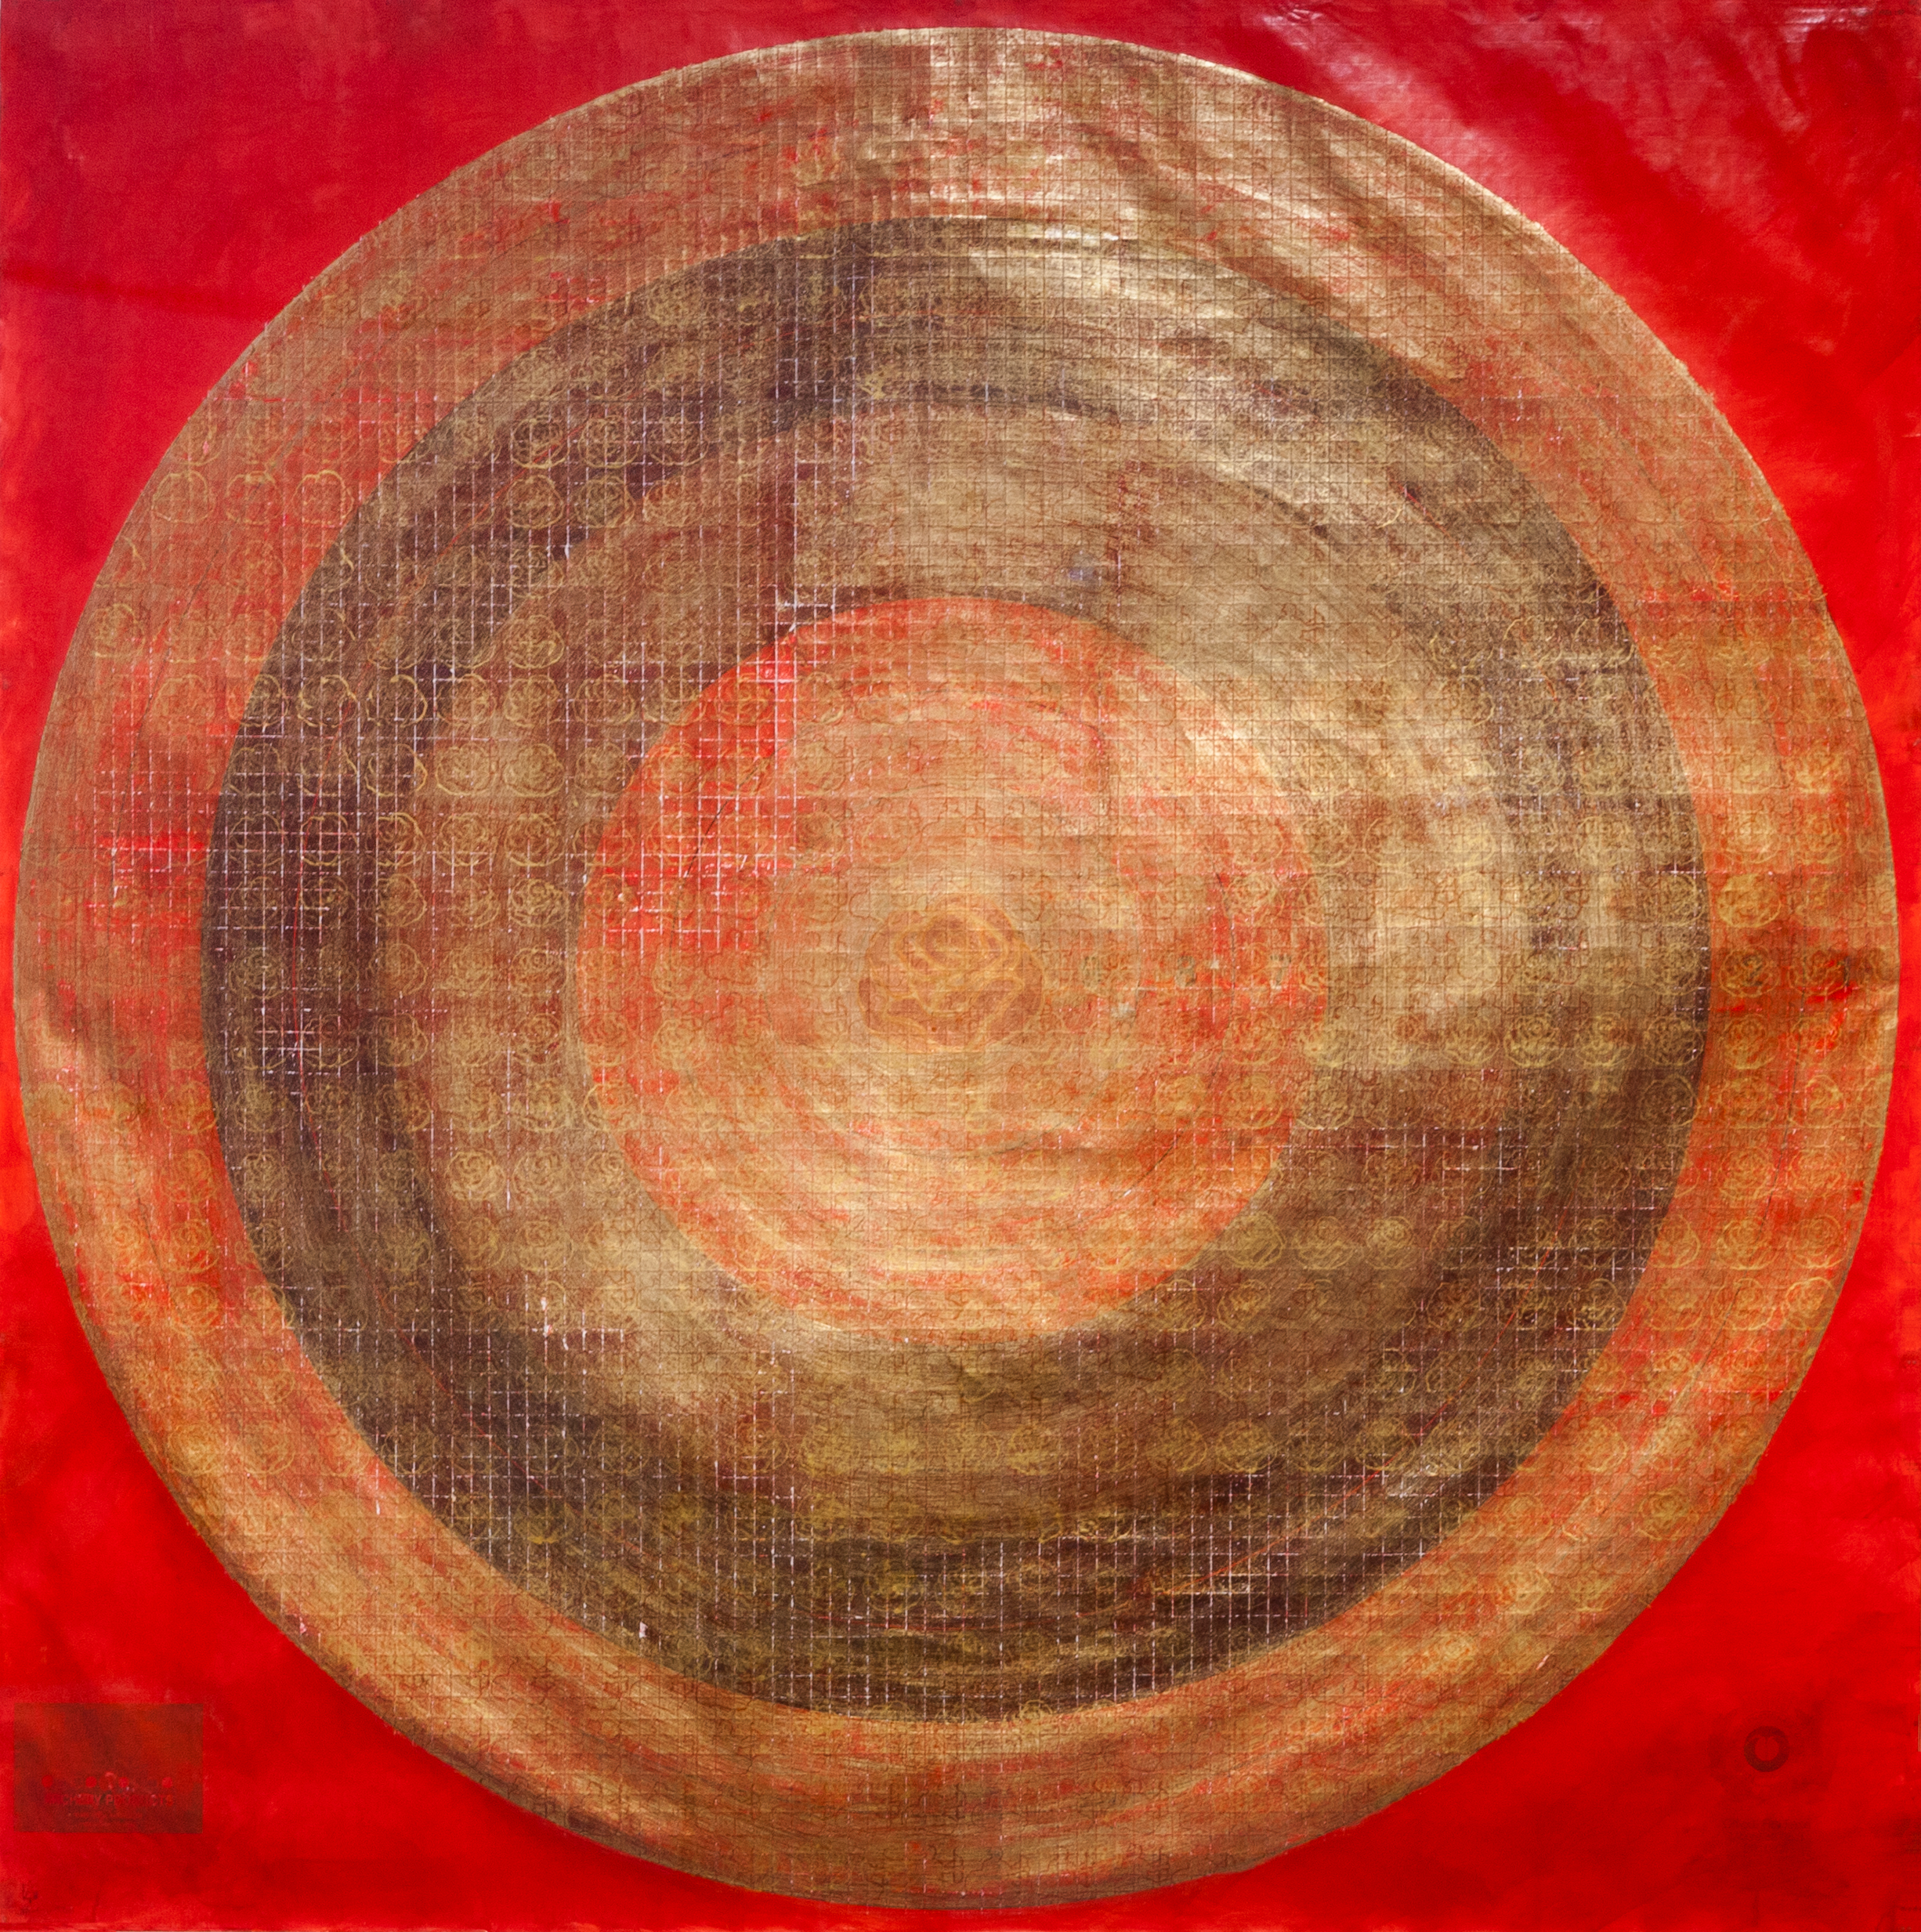 A Balancing Act of Celestial Proportions (Red/Sun) , 2013,Acrylic ink,graphite, gold leaf, woodblock stamps, needle tool, blade & sandpaper on found target paper, 140 x 140 cm